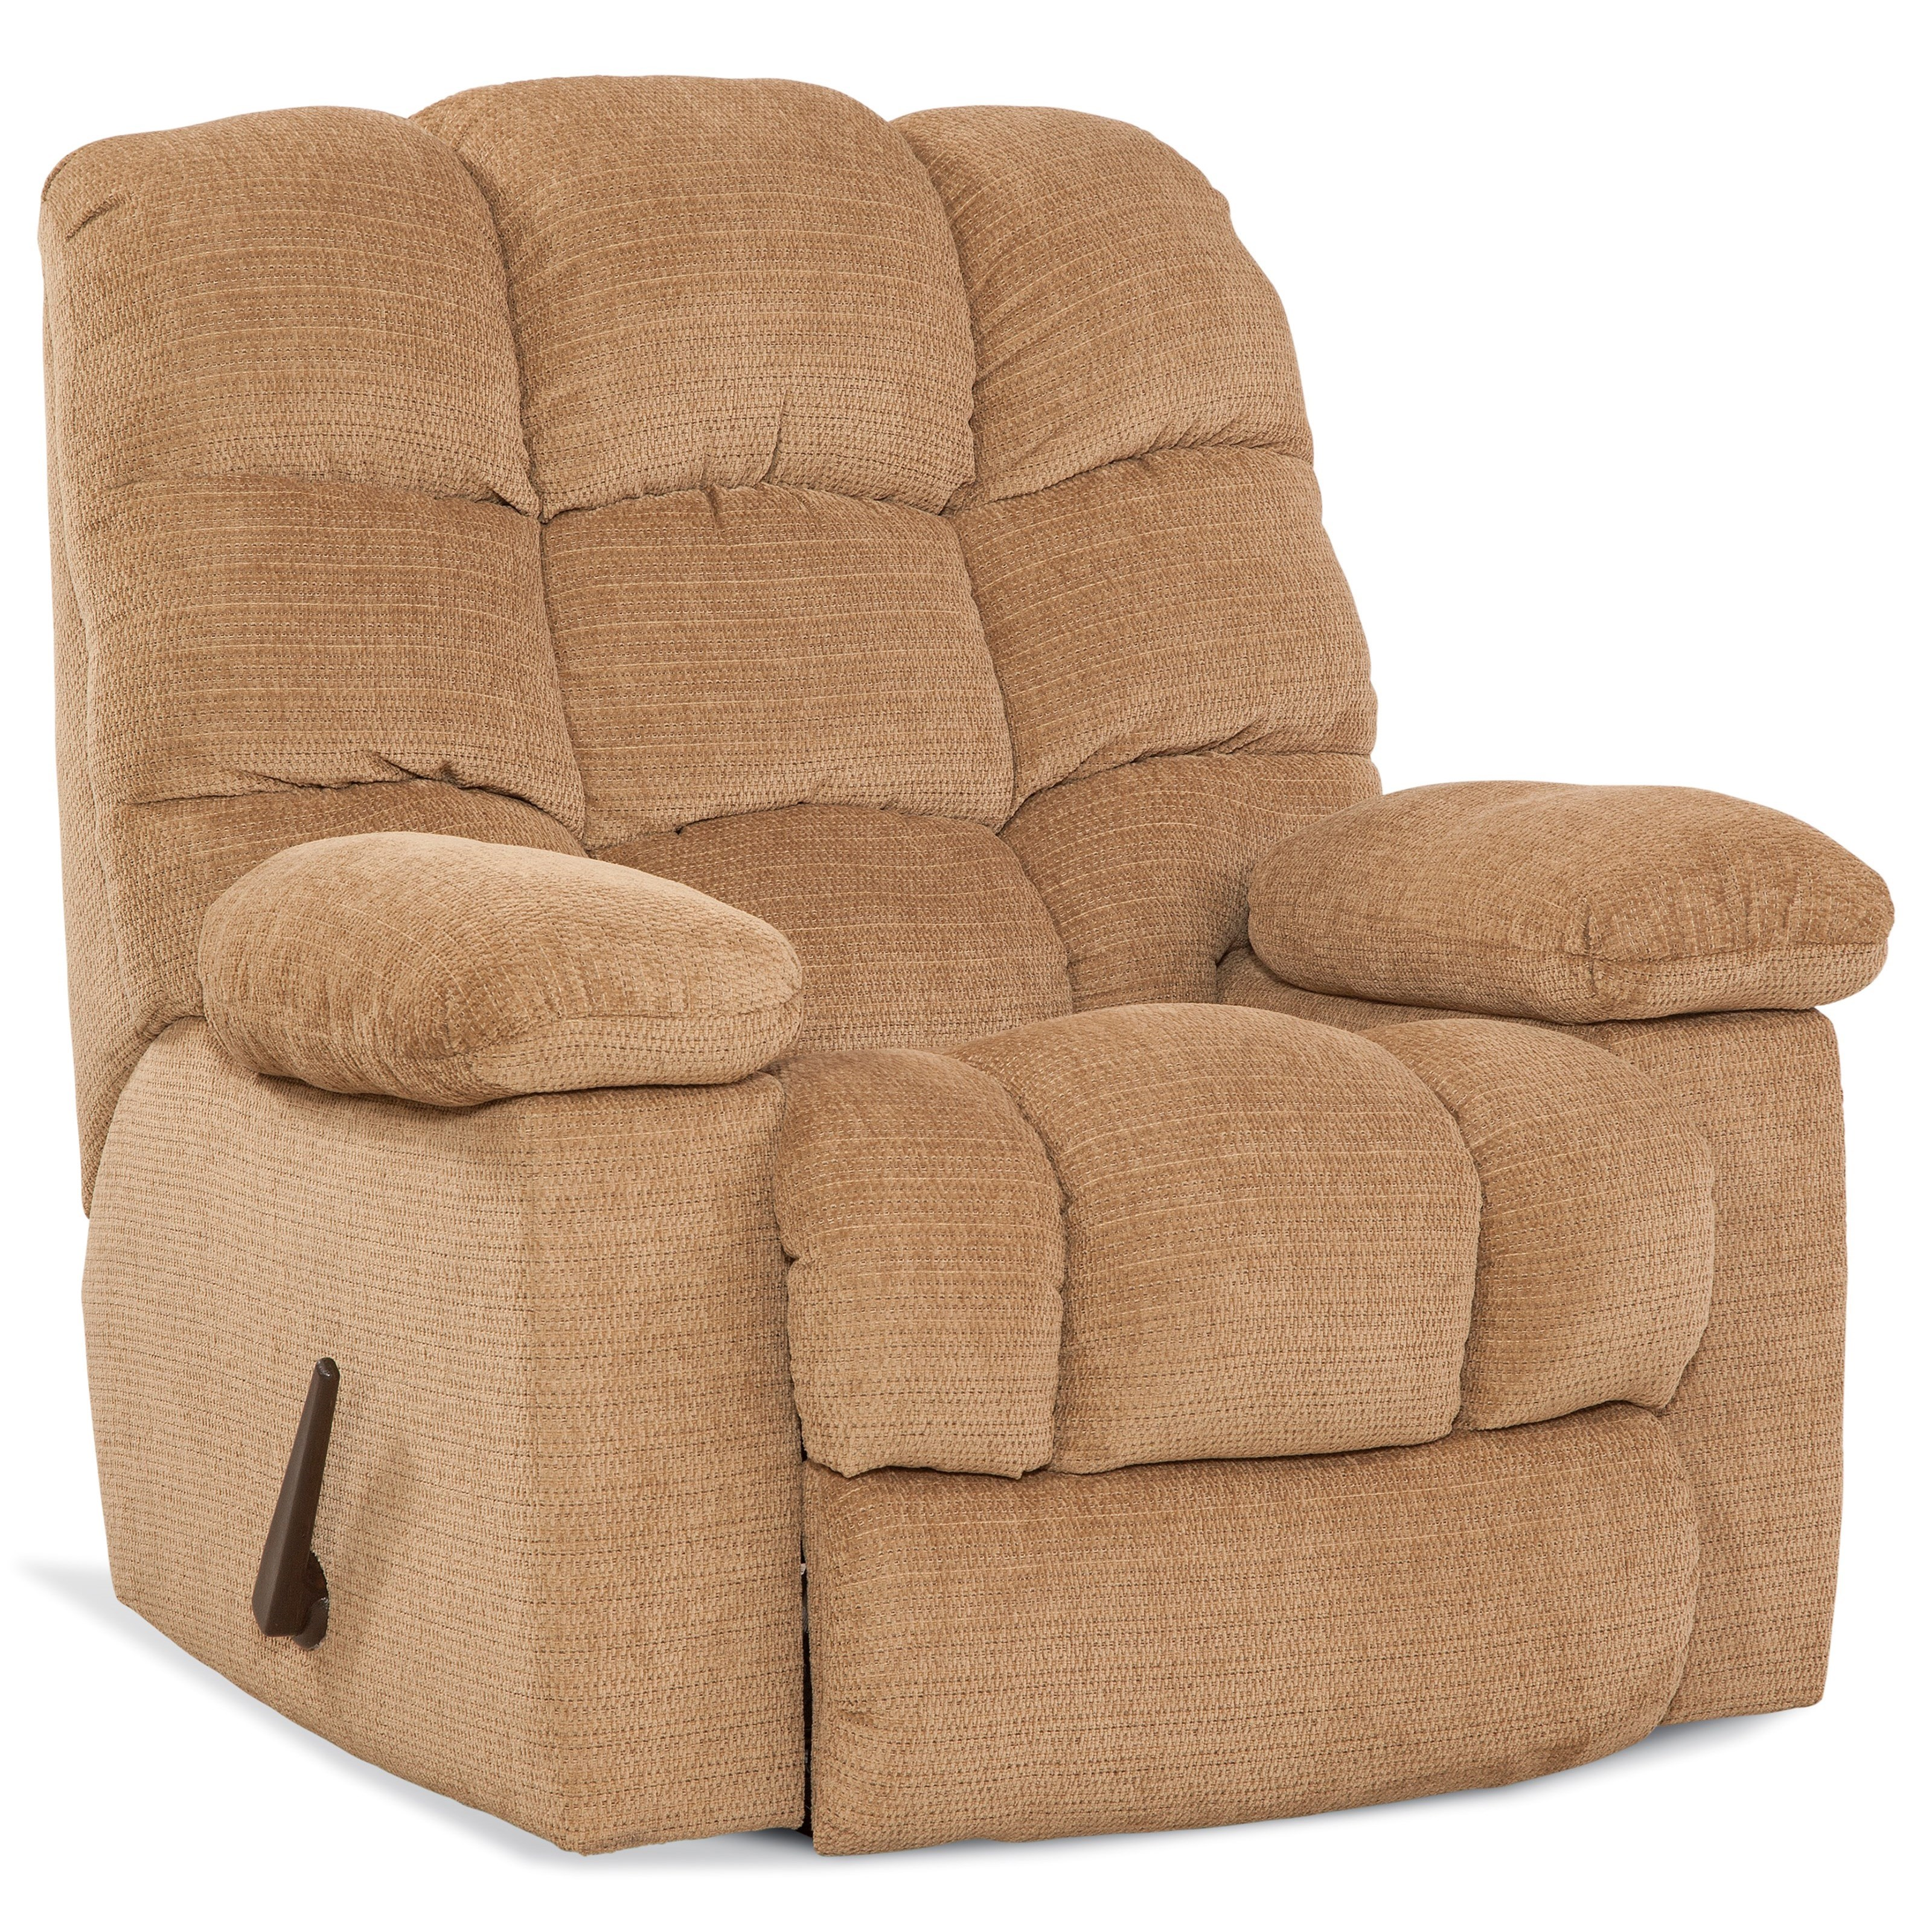 HomeStretch 160 Collection Rocker Recliner - Item Number: 160-91-17